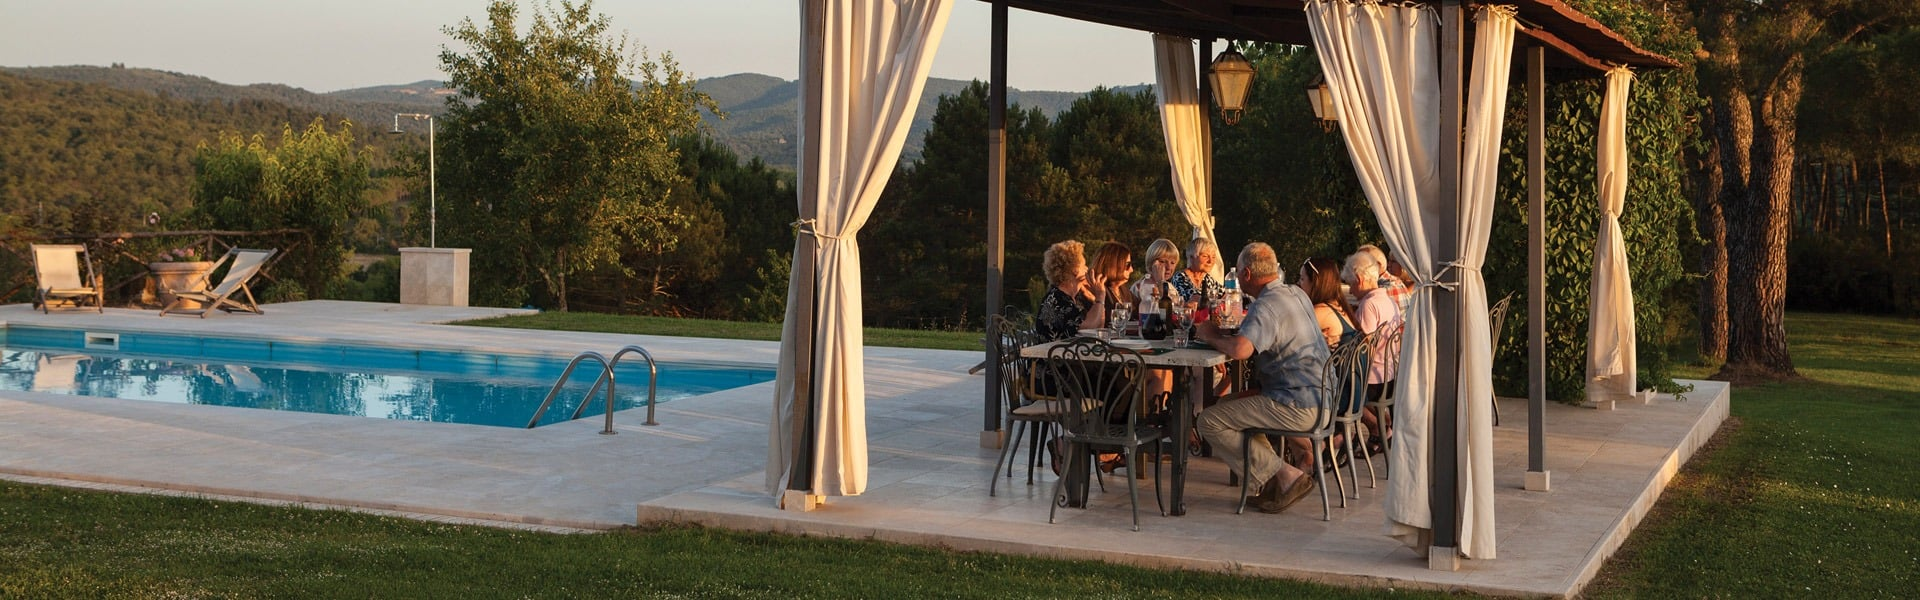 Our language teacher with guests enjoying Italian food in evening sunshine.